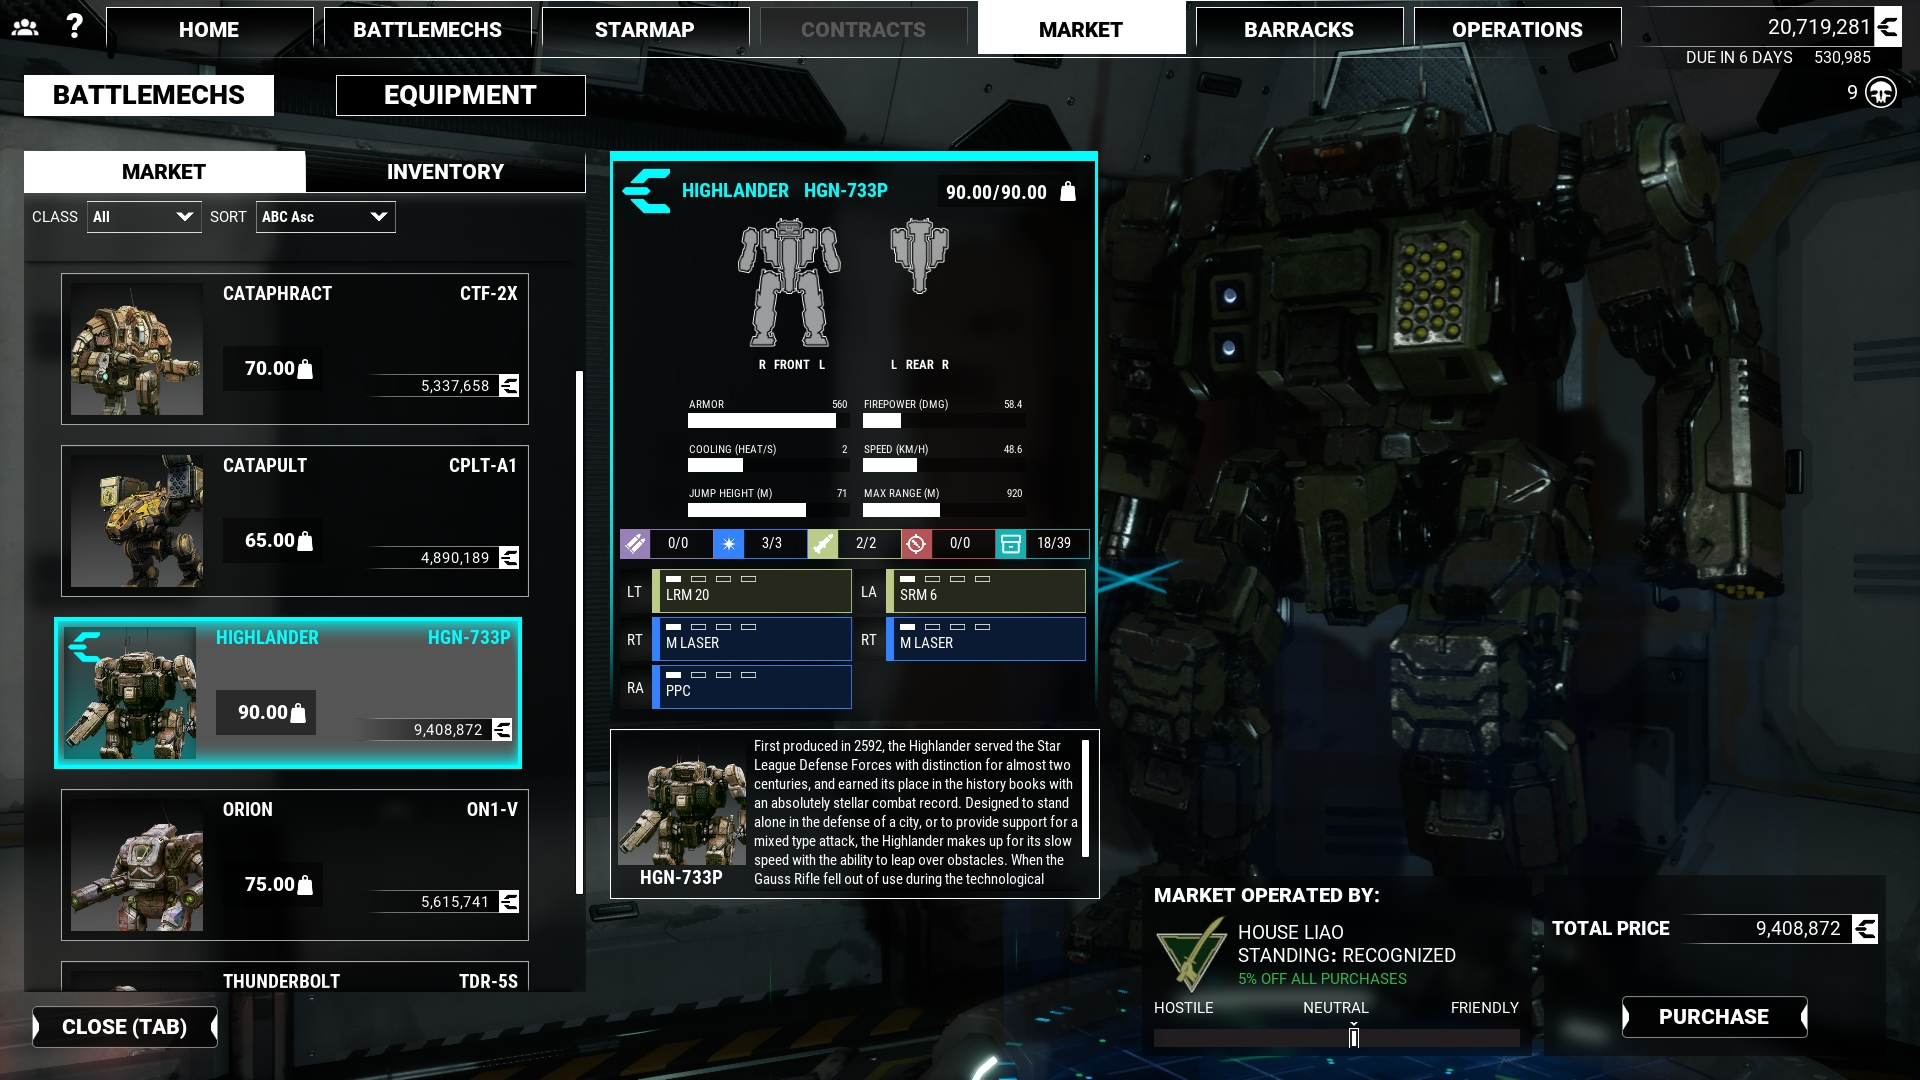 MechWarrior-Win64-Shipping_2020_05_19_18_43_20_351.jpg